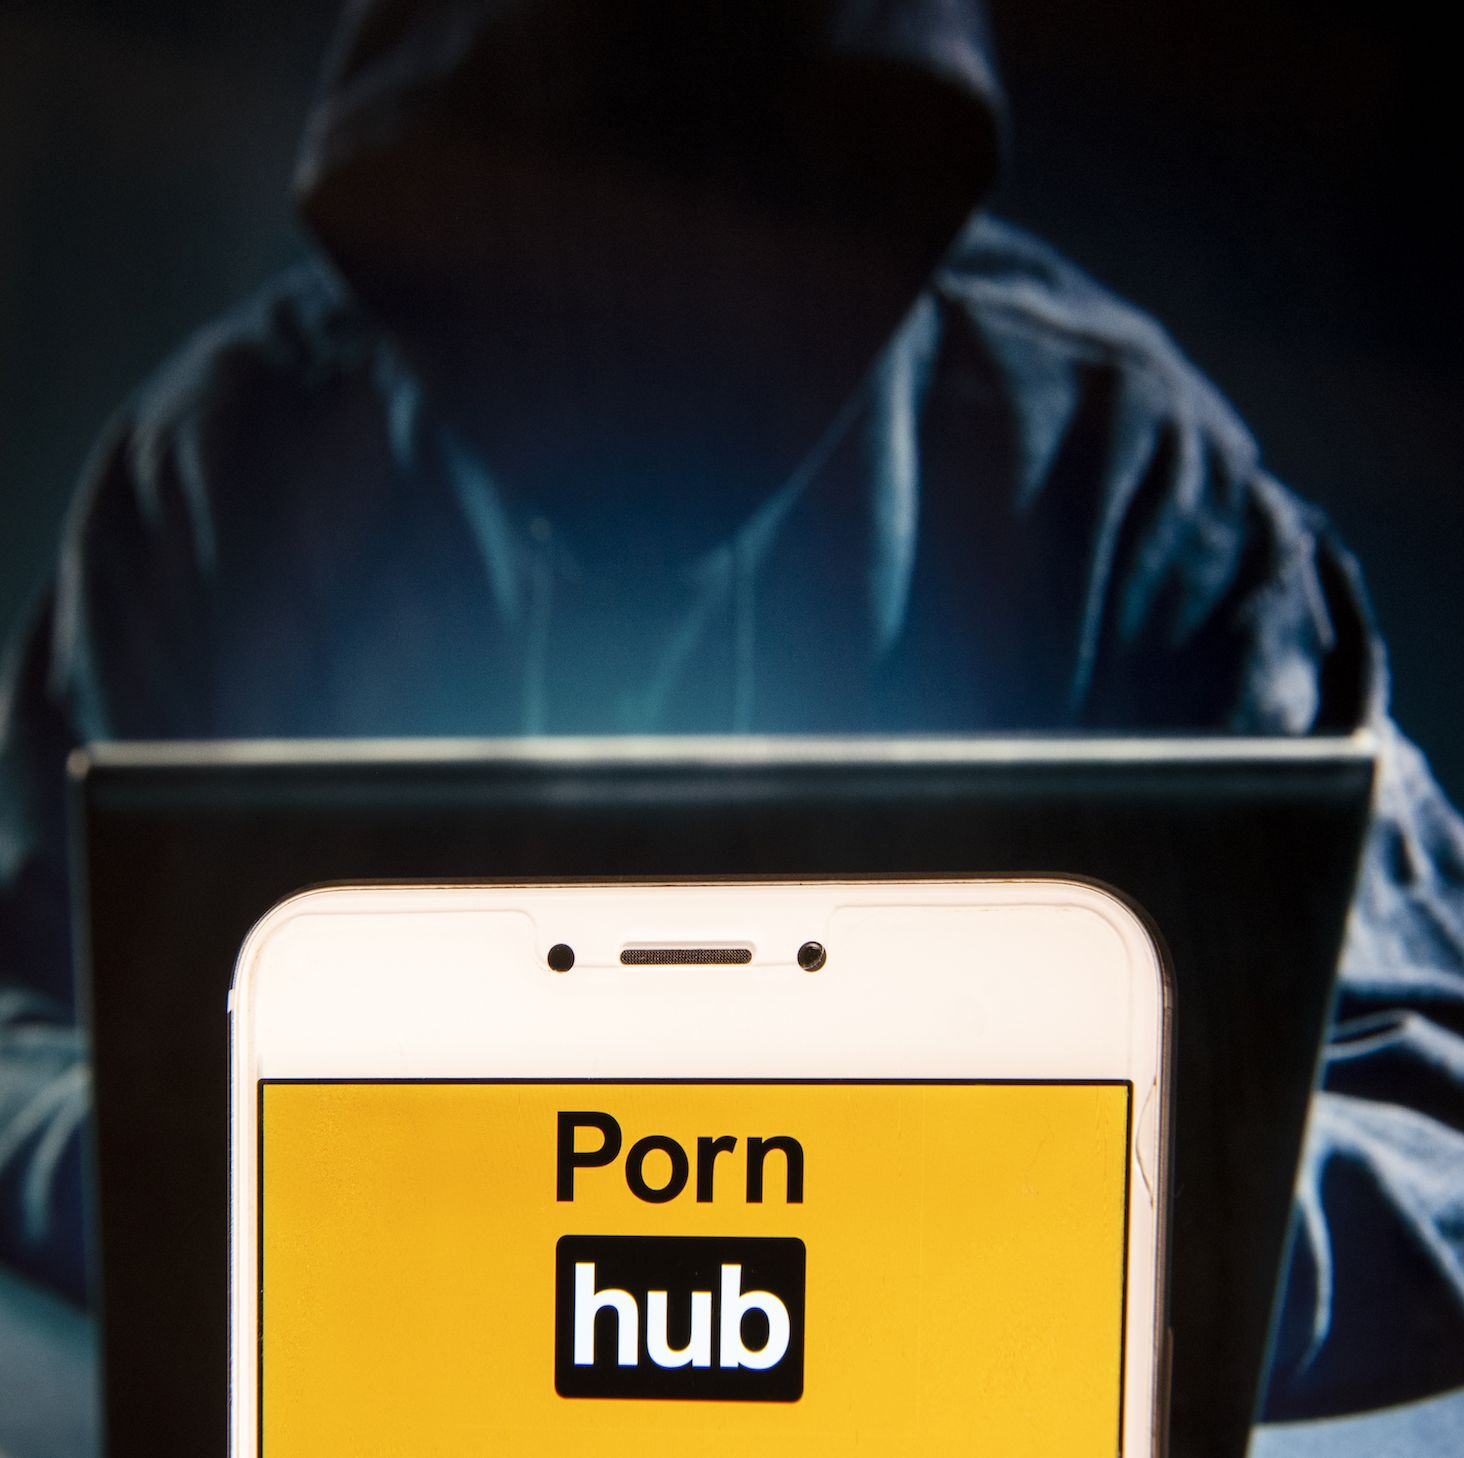 Pornhub's 2019 Insights Show That When the Going Gets Tough, People Watch Porn